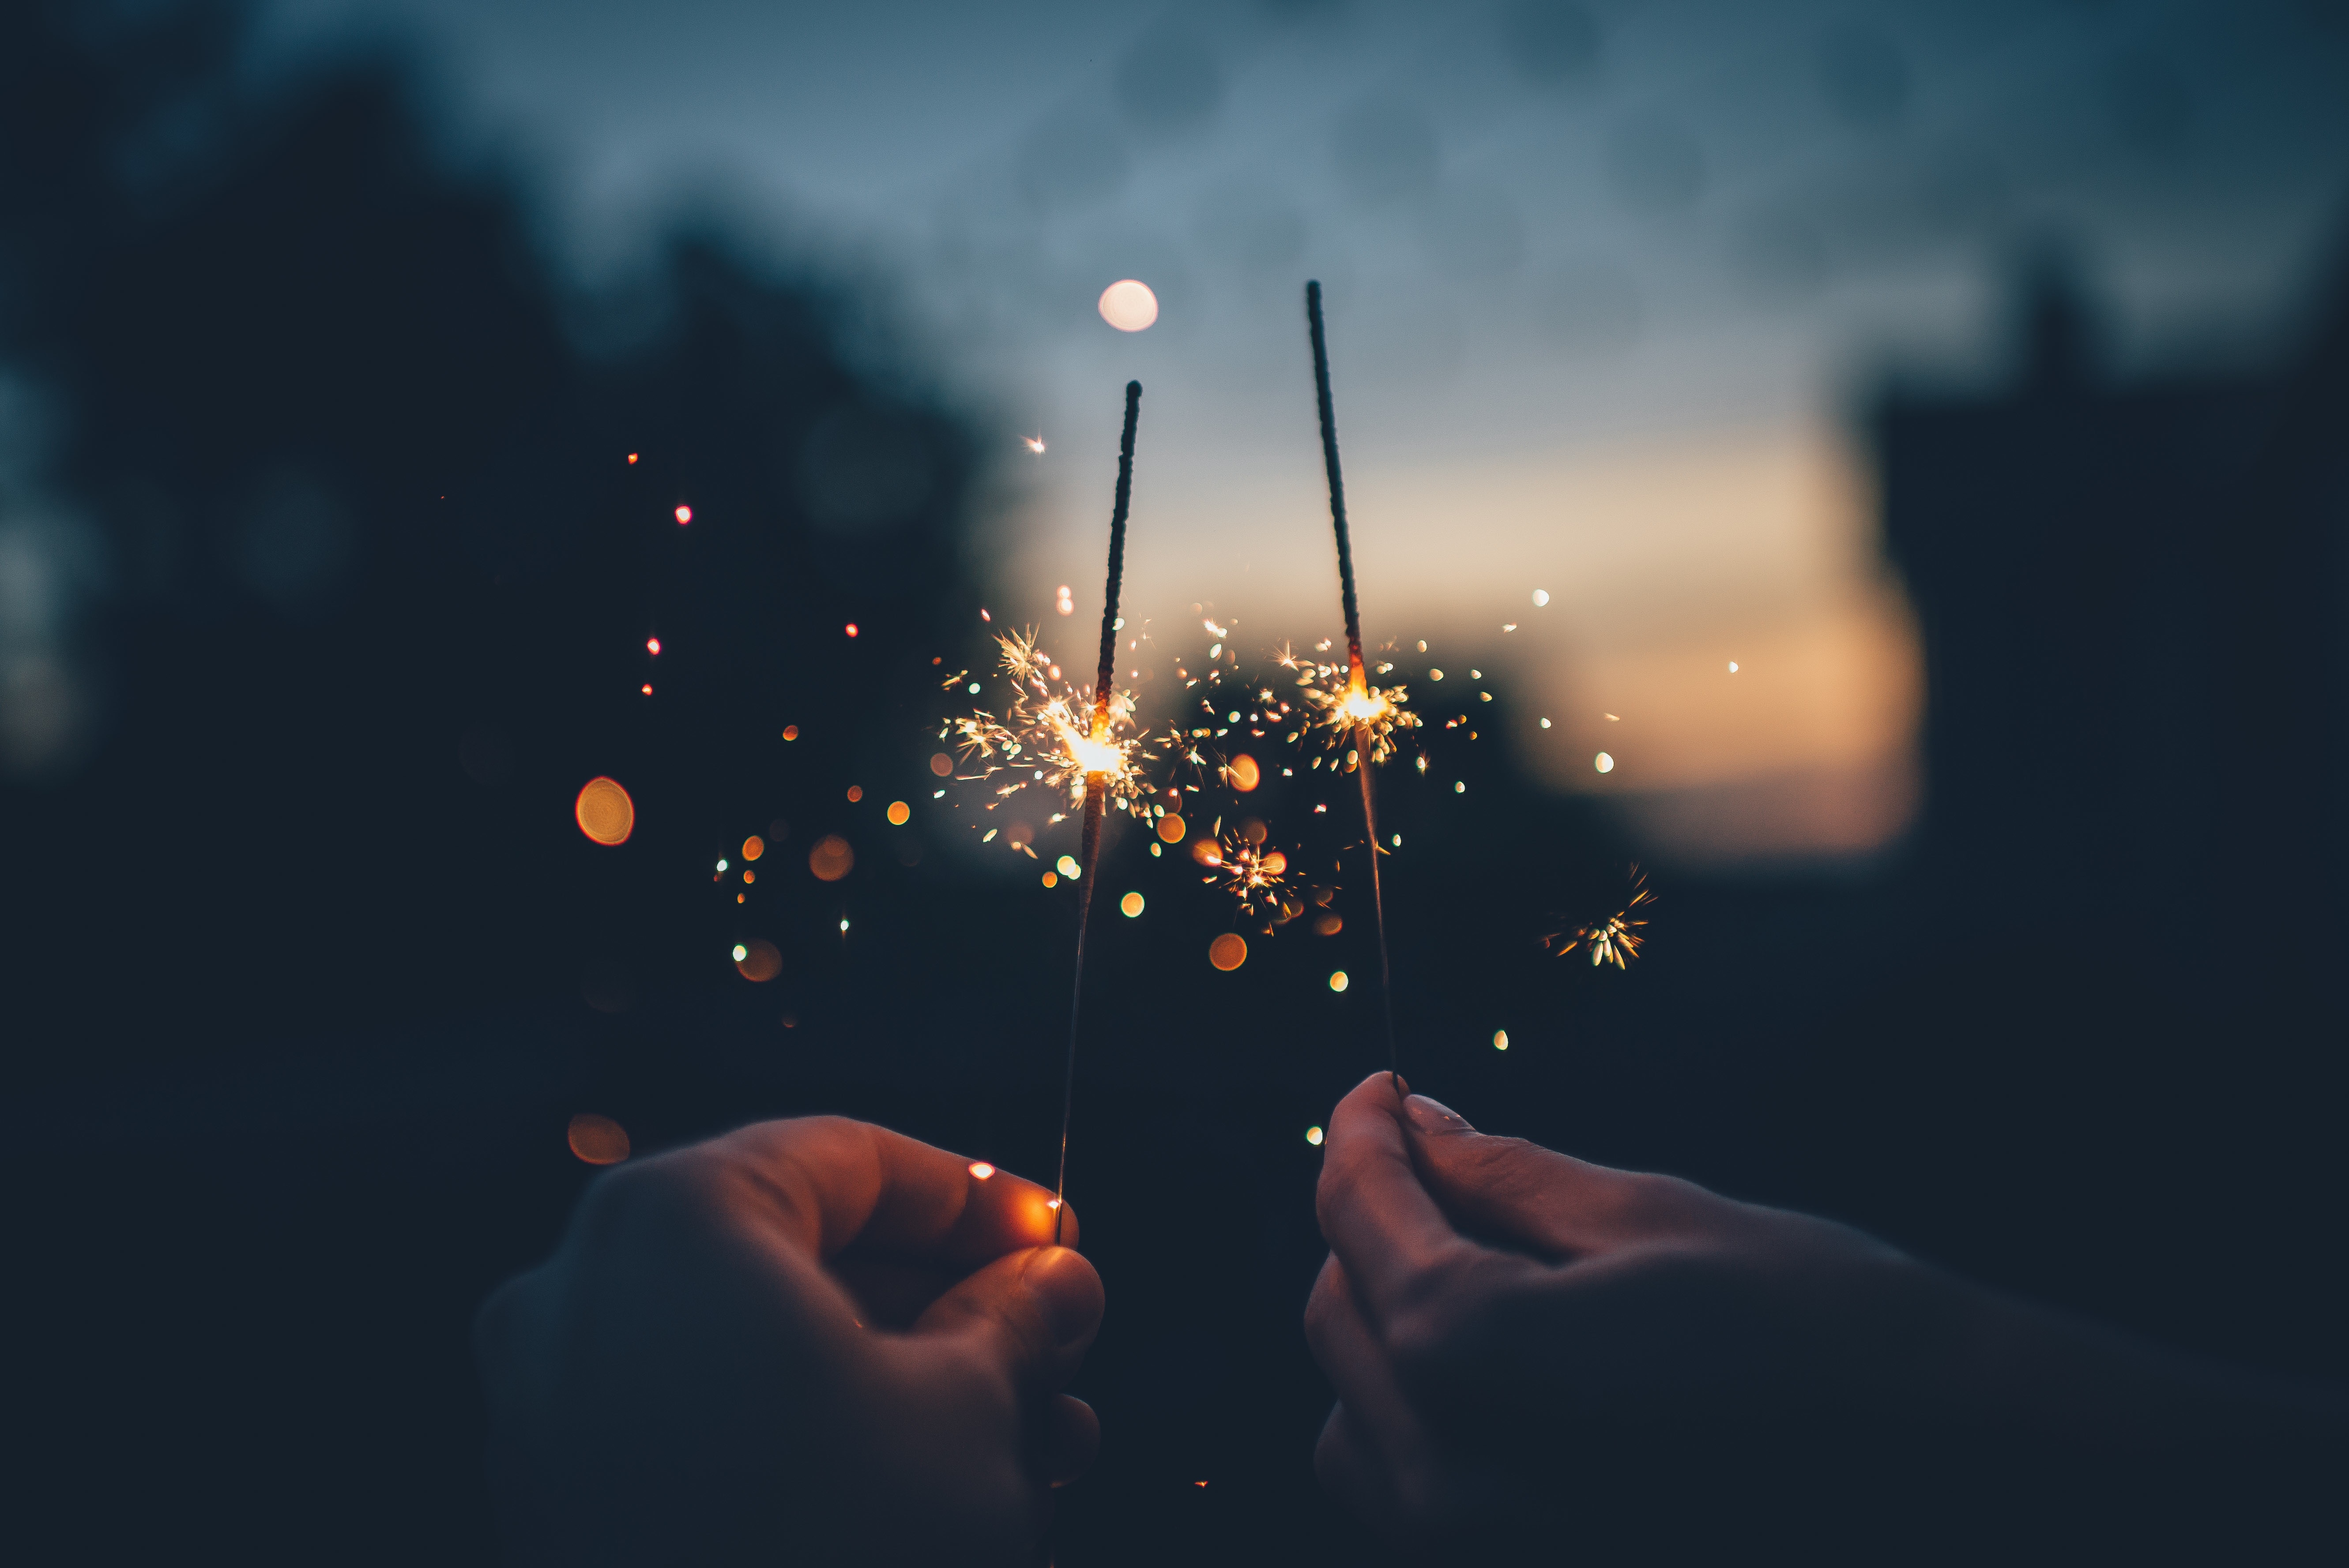 a photo of two hands holding sparklers